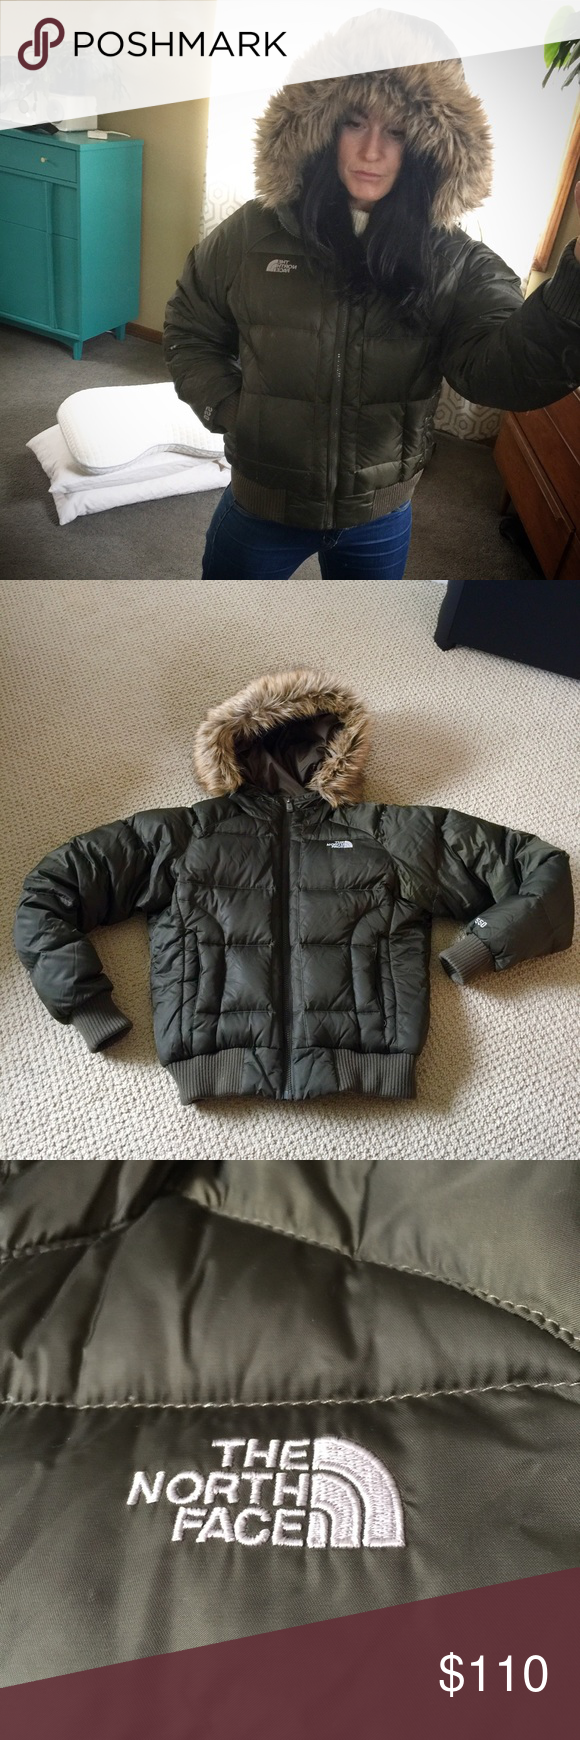 The North Face Fur Hooded 550 Puffer Jacket Puffer Jackets The North Face Jackets [ 1740 x 580 Pixel ]